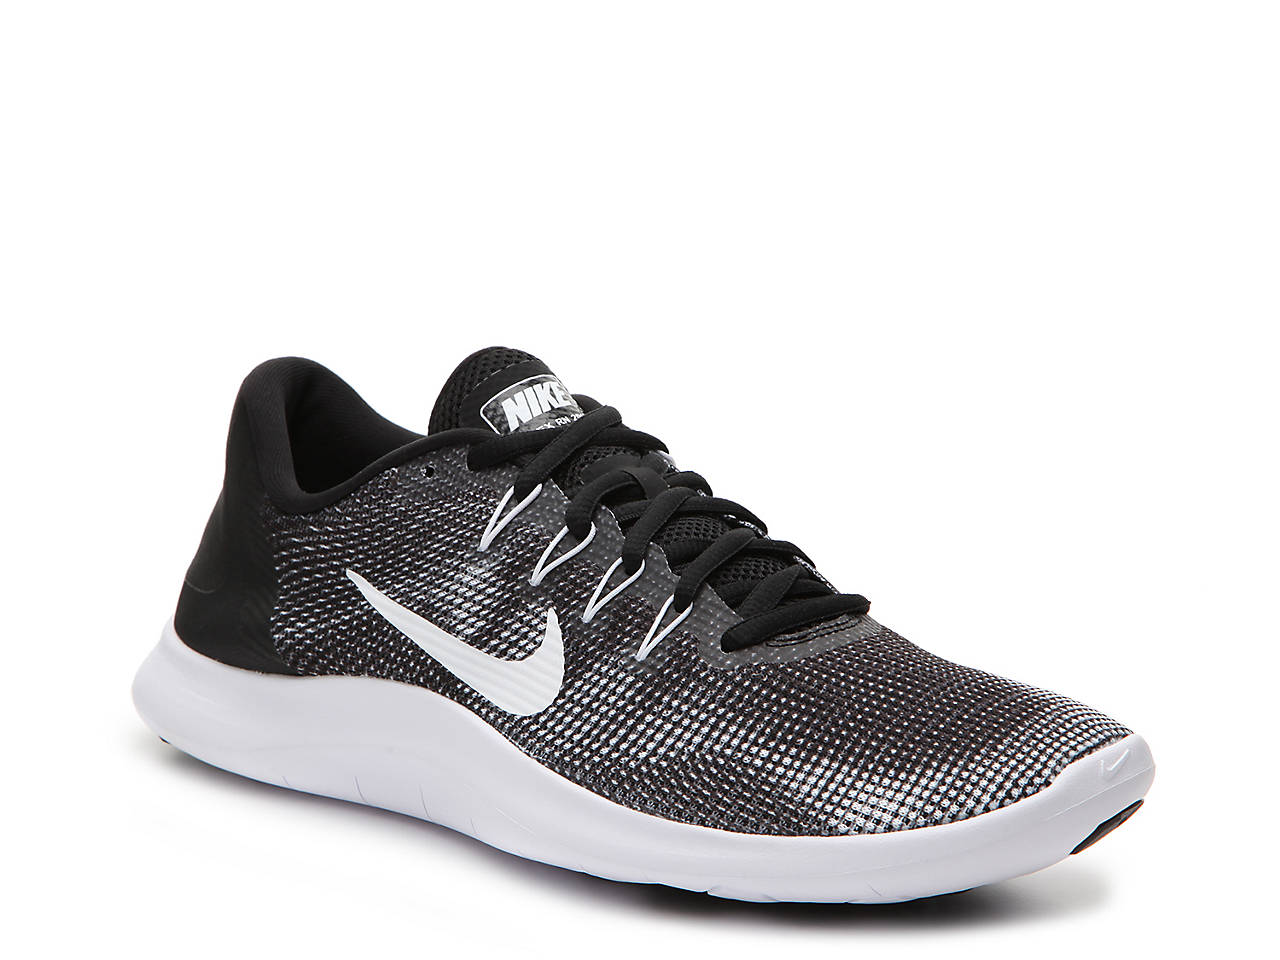 e96525246437a Nike Flex Lightweight 2018 RN Sneaker - Men s Men s Shoes